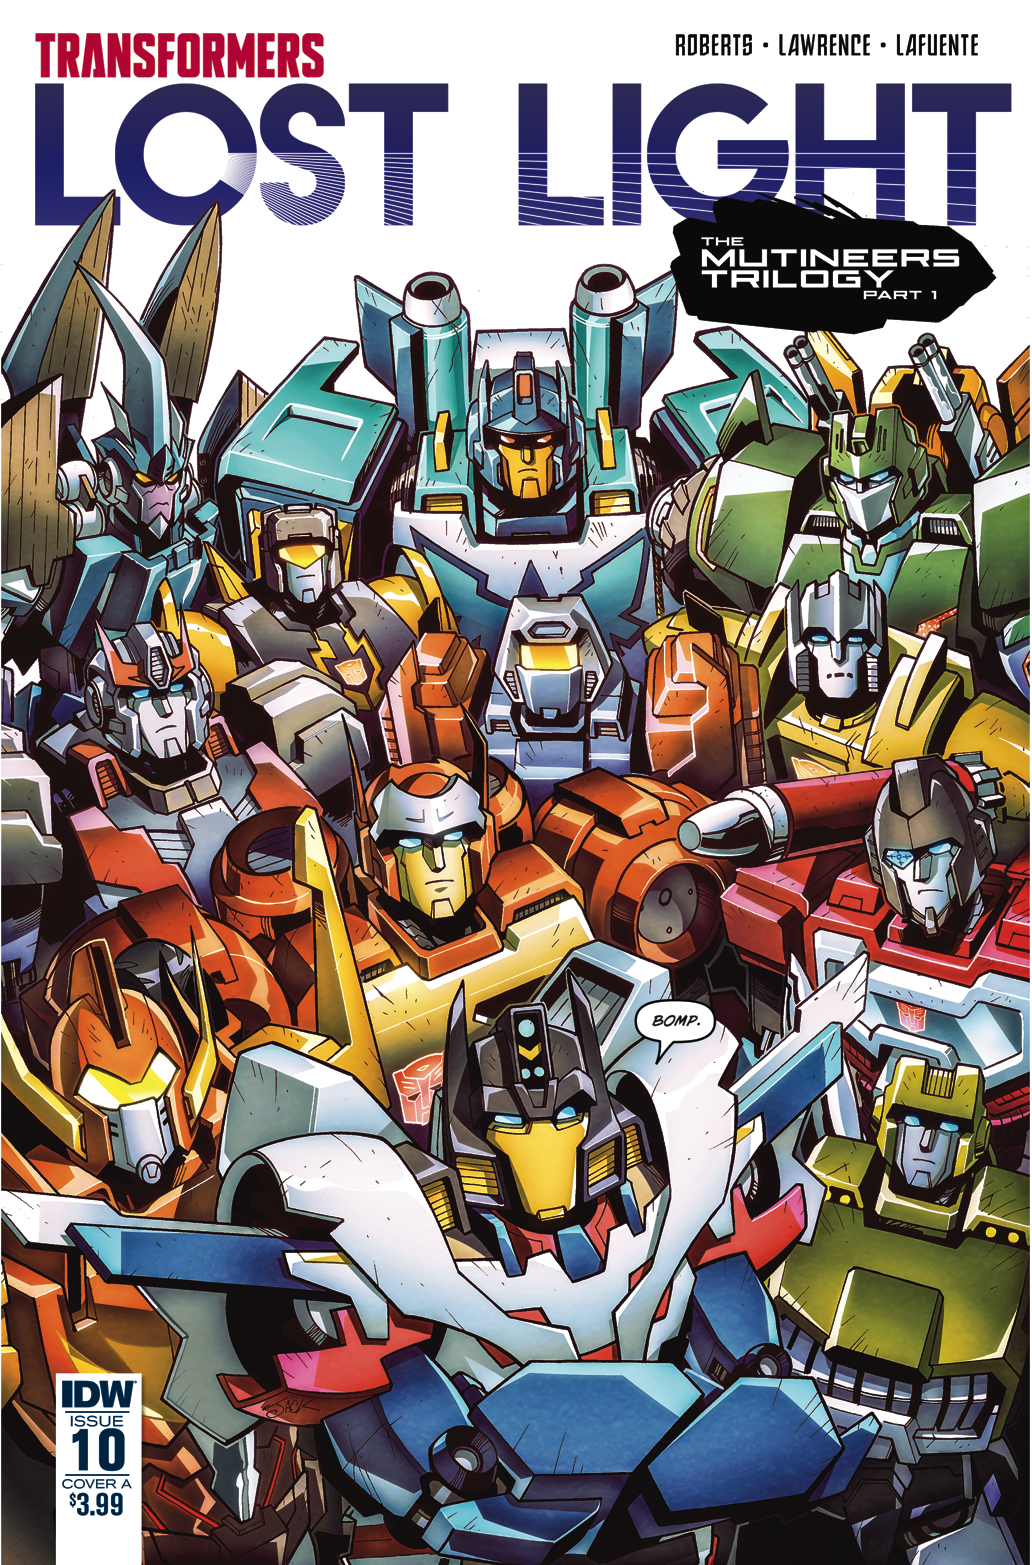 TRANSFORMERS LOST LIGHT #10 CVR A LAWRENCE